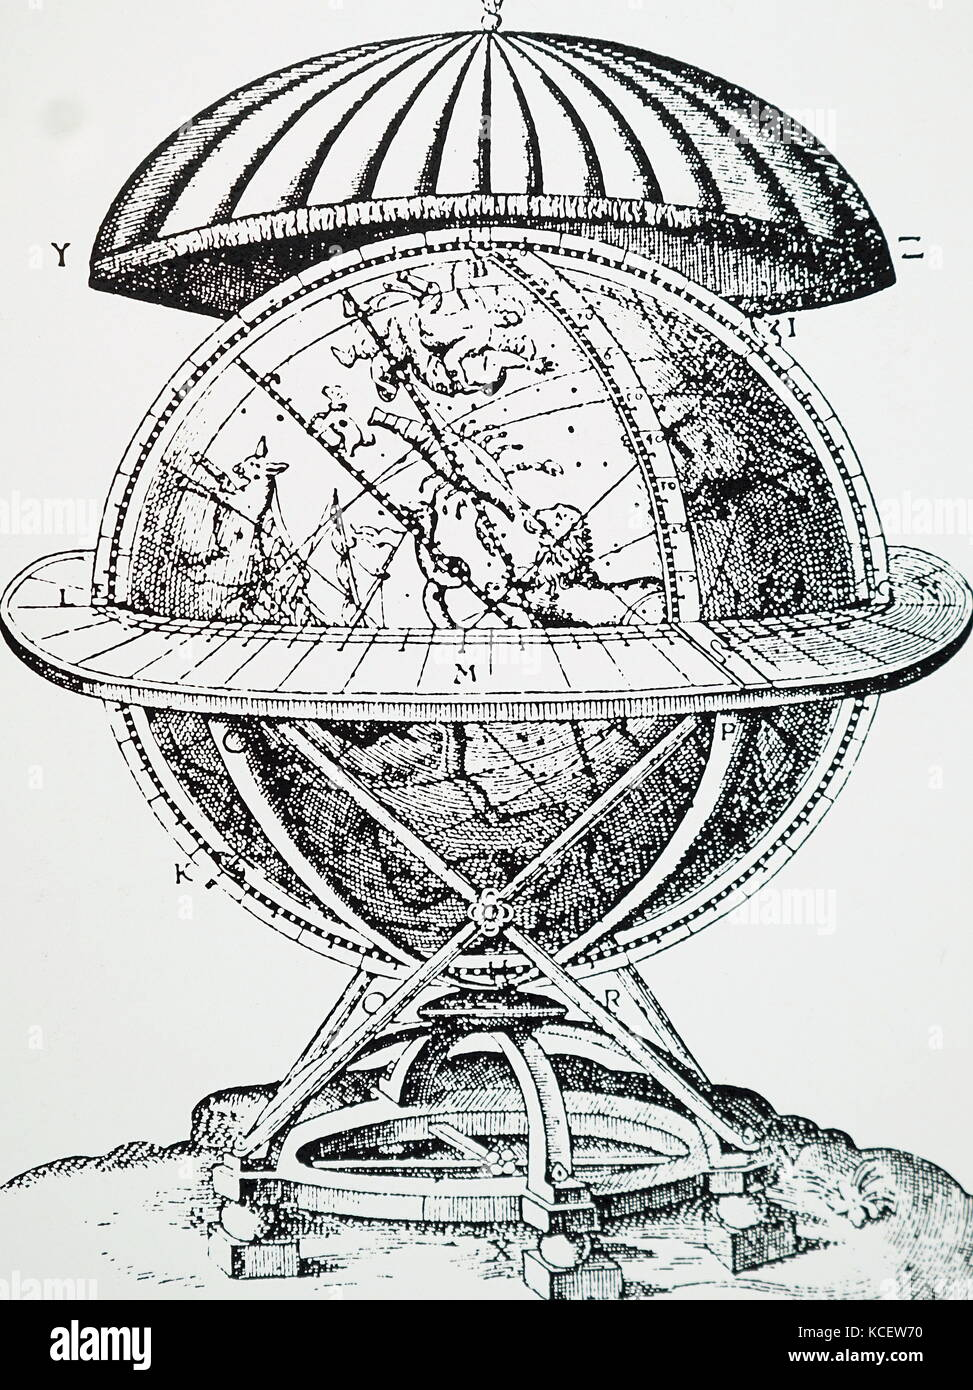 Engraving depicting Tycho Brahe's celestial globe on which he plotted the positions of the stars he observed. - Stock Image